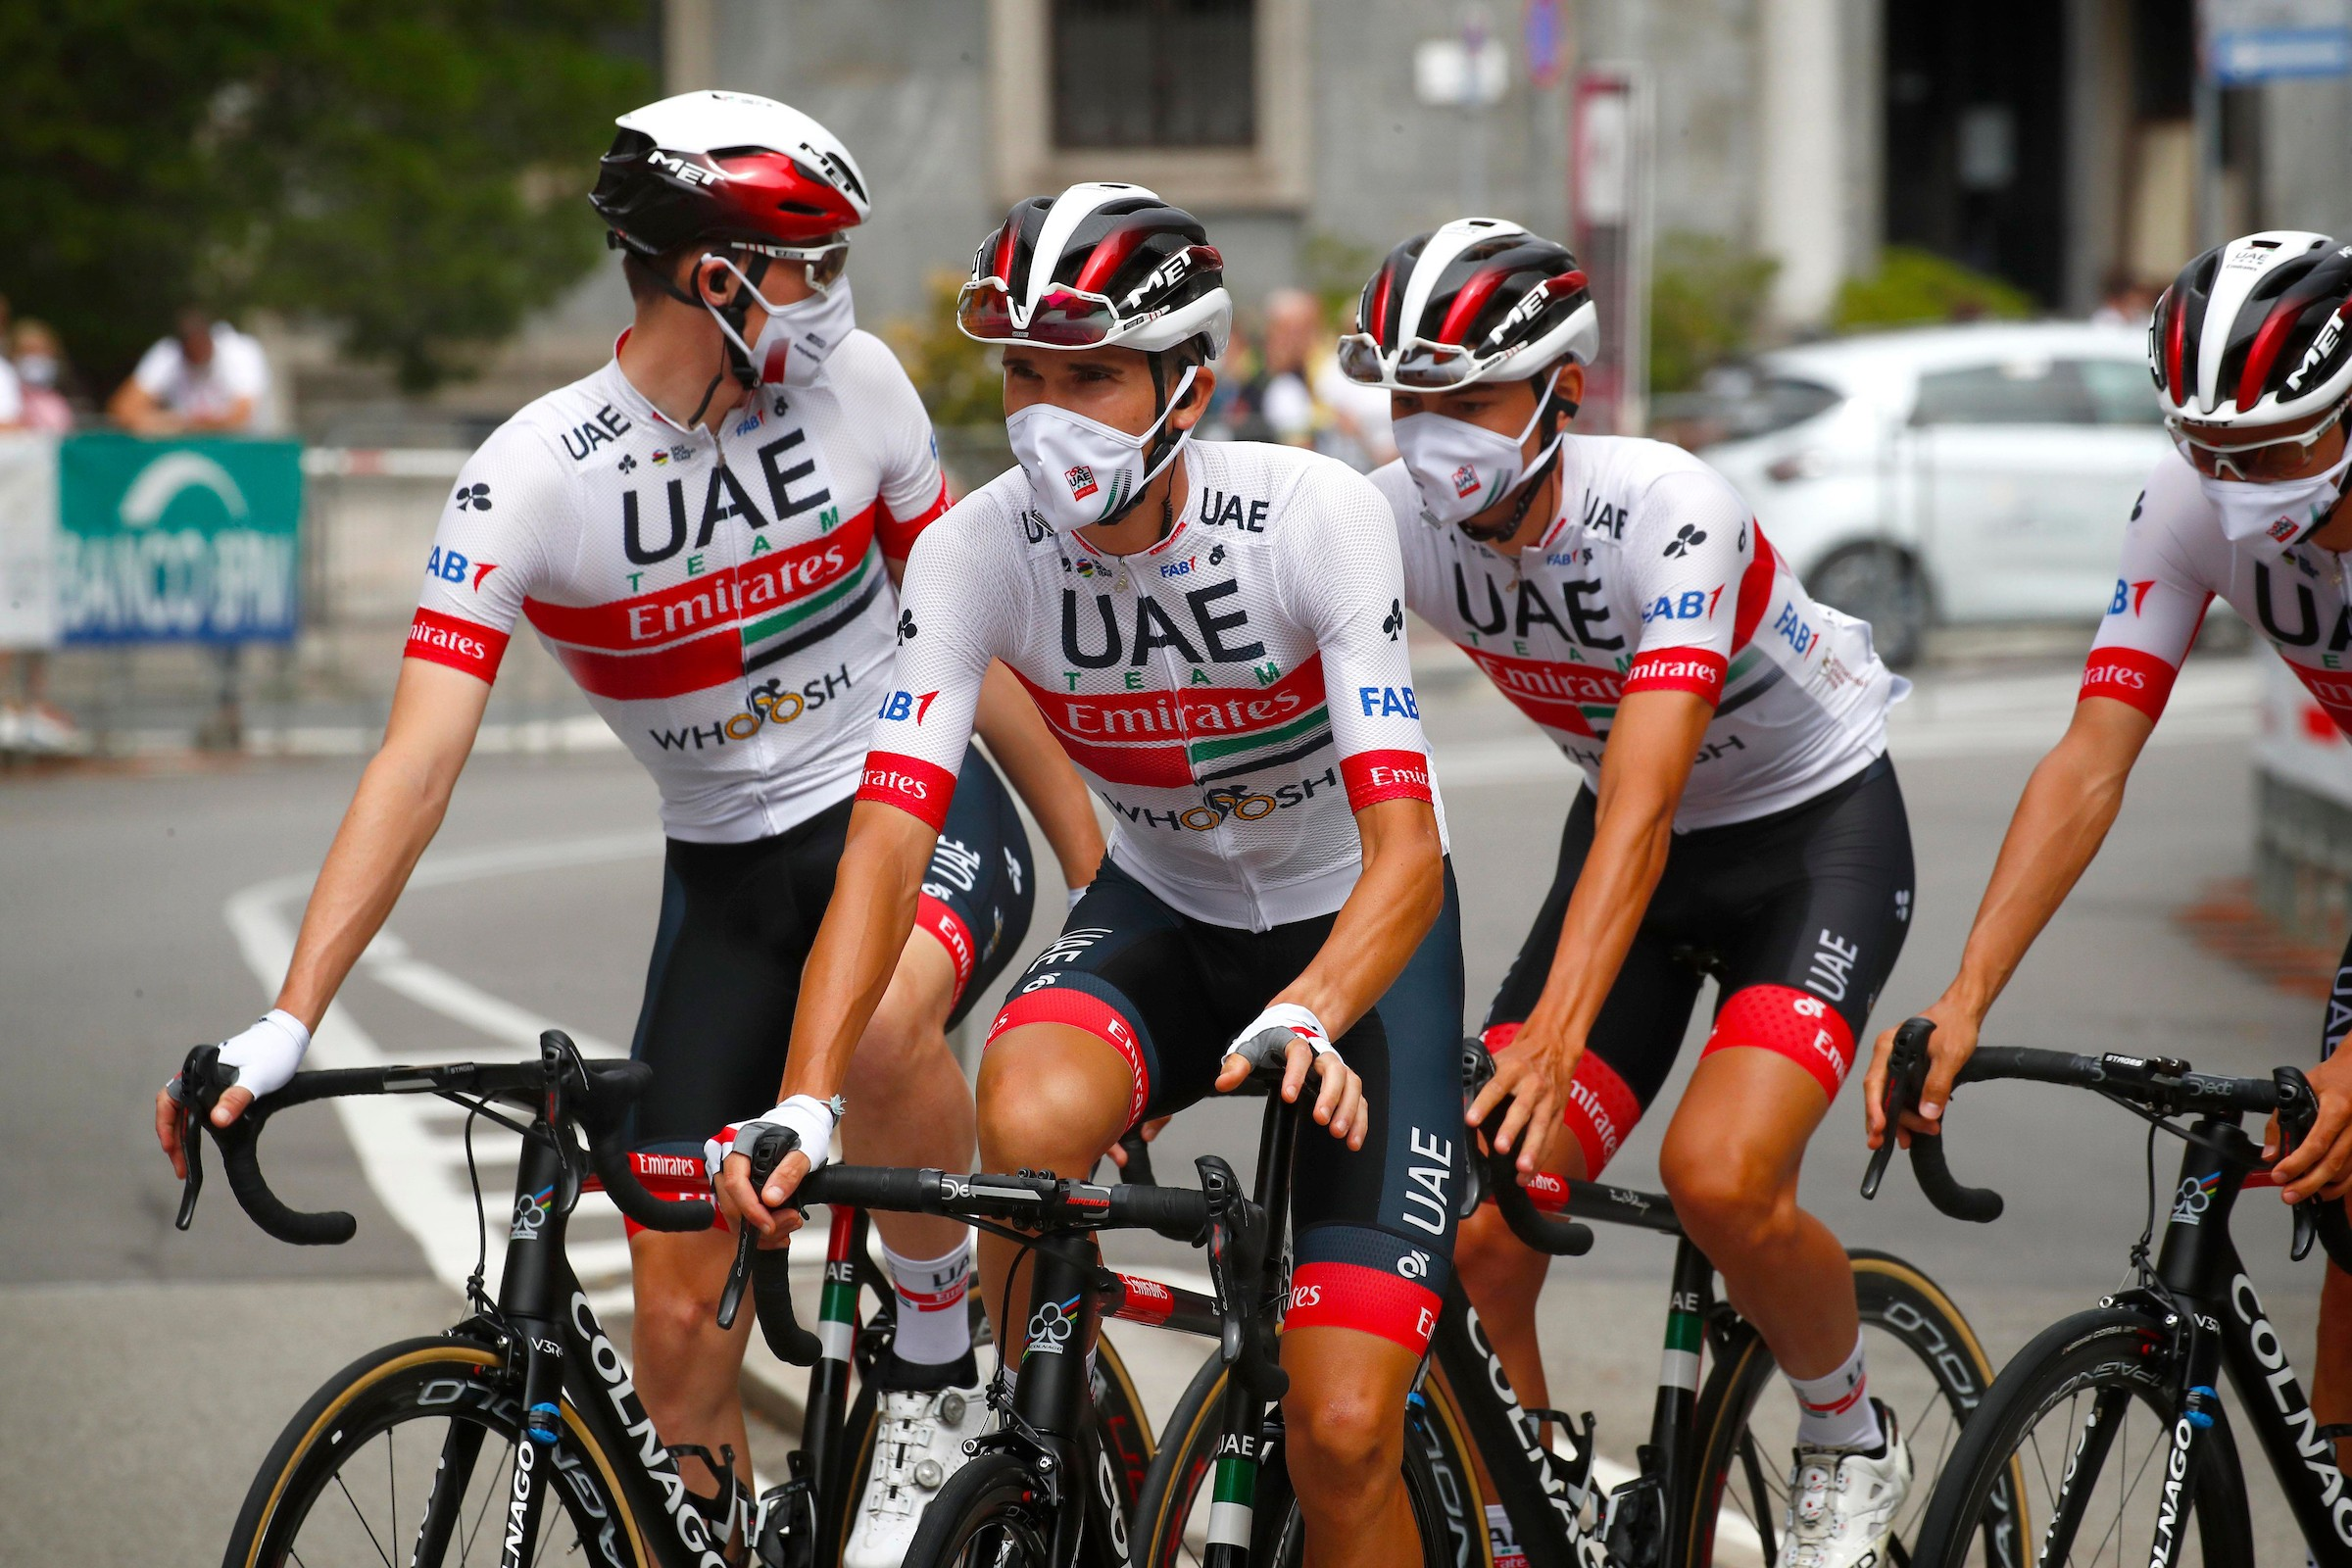 Team UAE Emirates on Colnago bikes